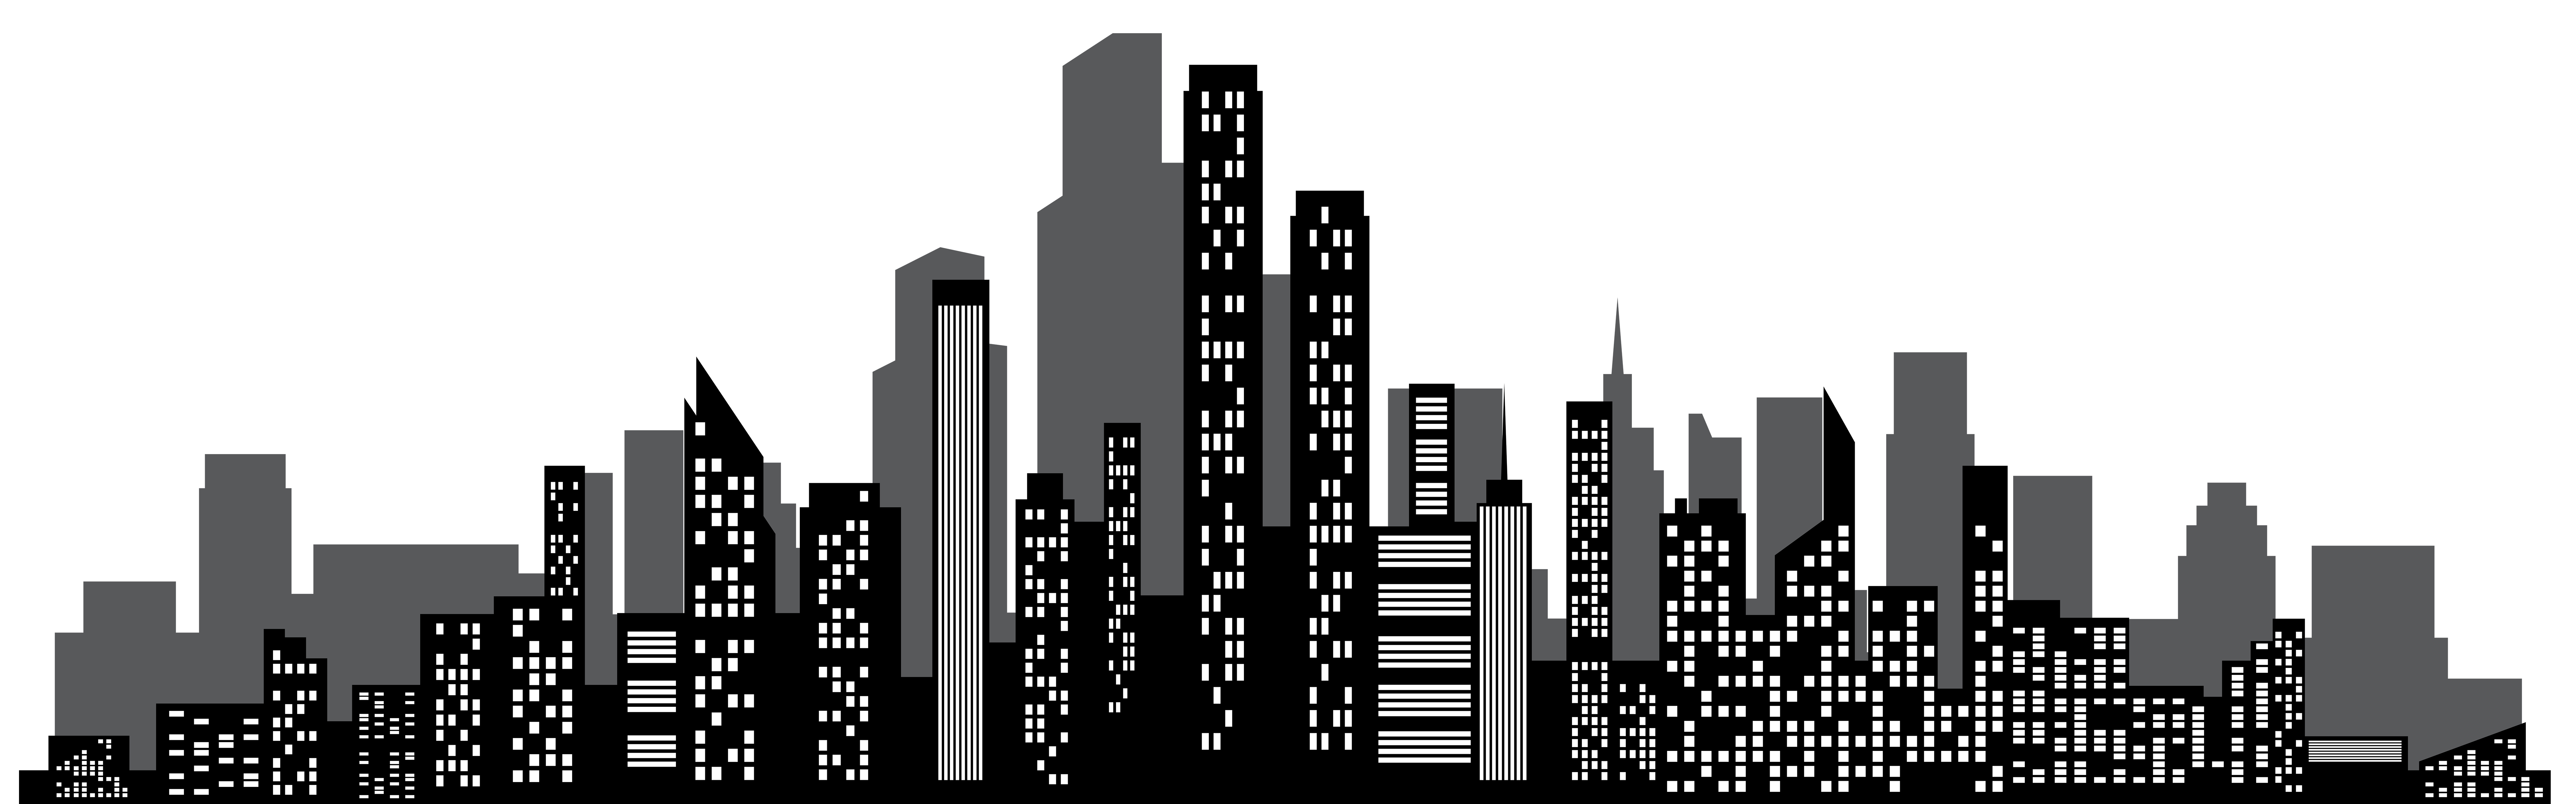 cityscape silhouette at getdrawings com free for personal use rh getdrawings com cityscape clipart black and white cityscape clipart black and white